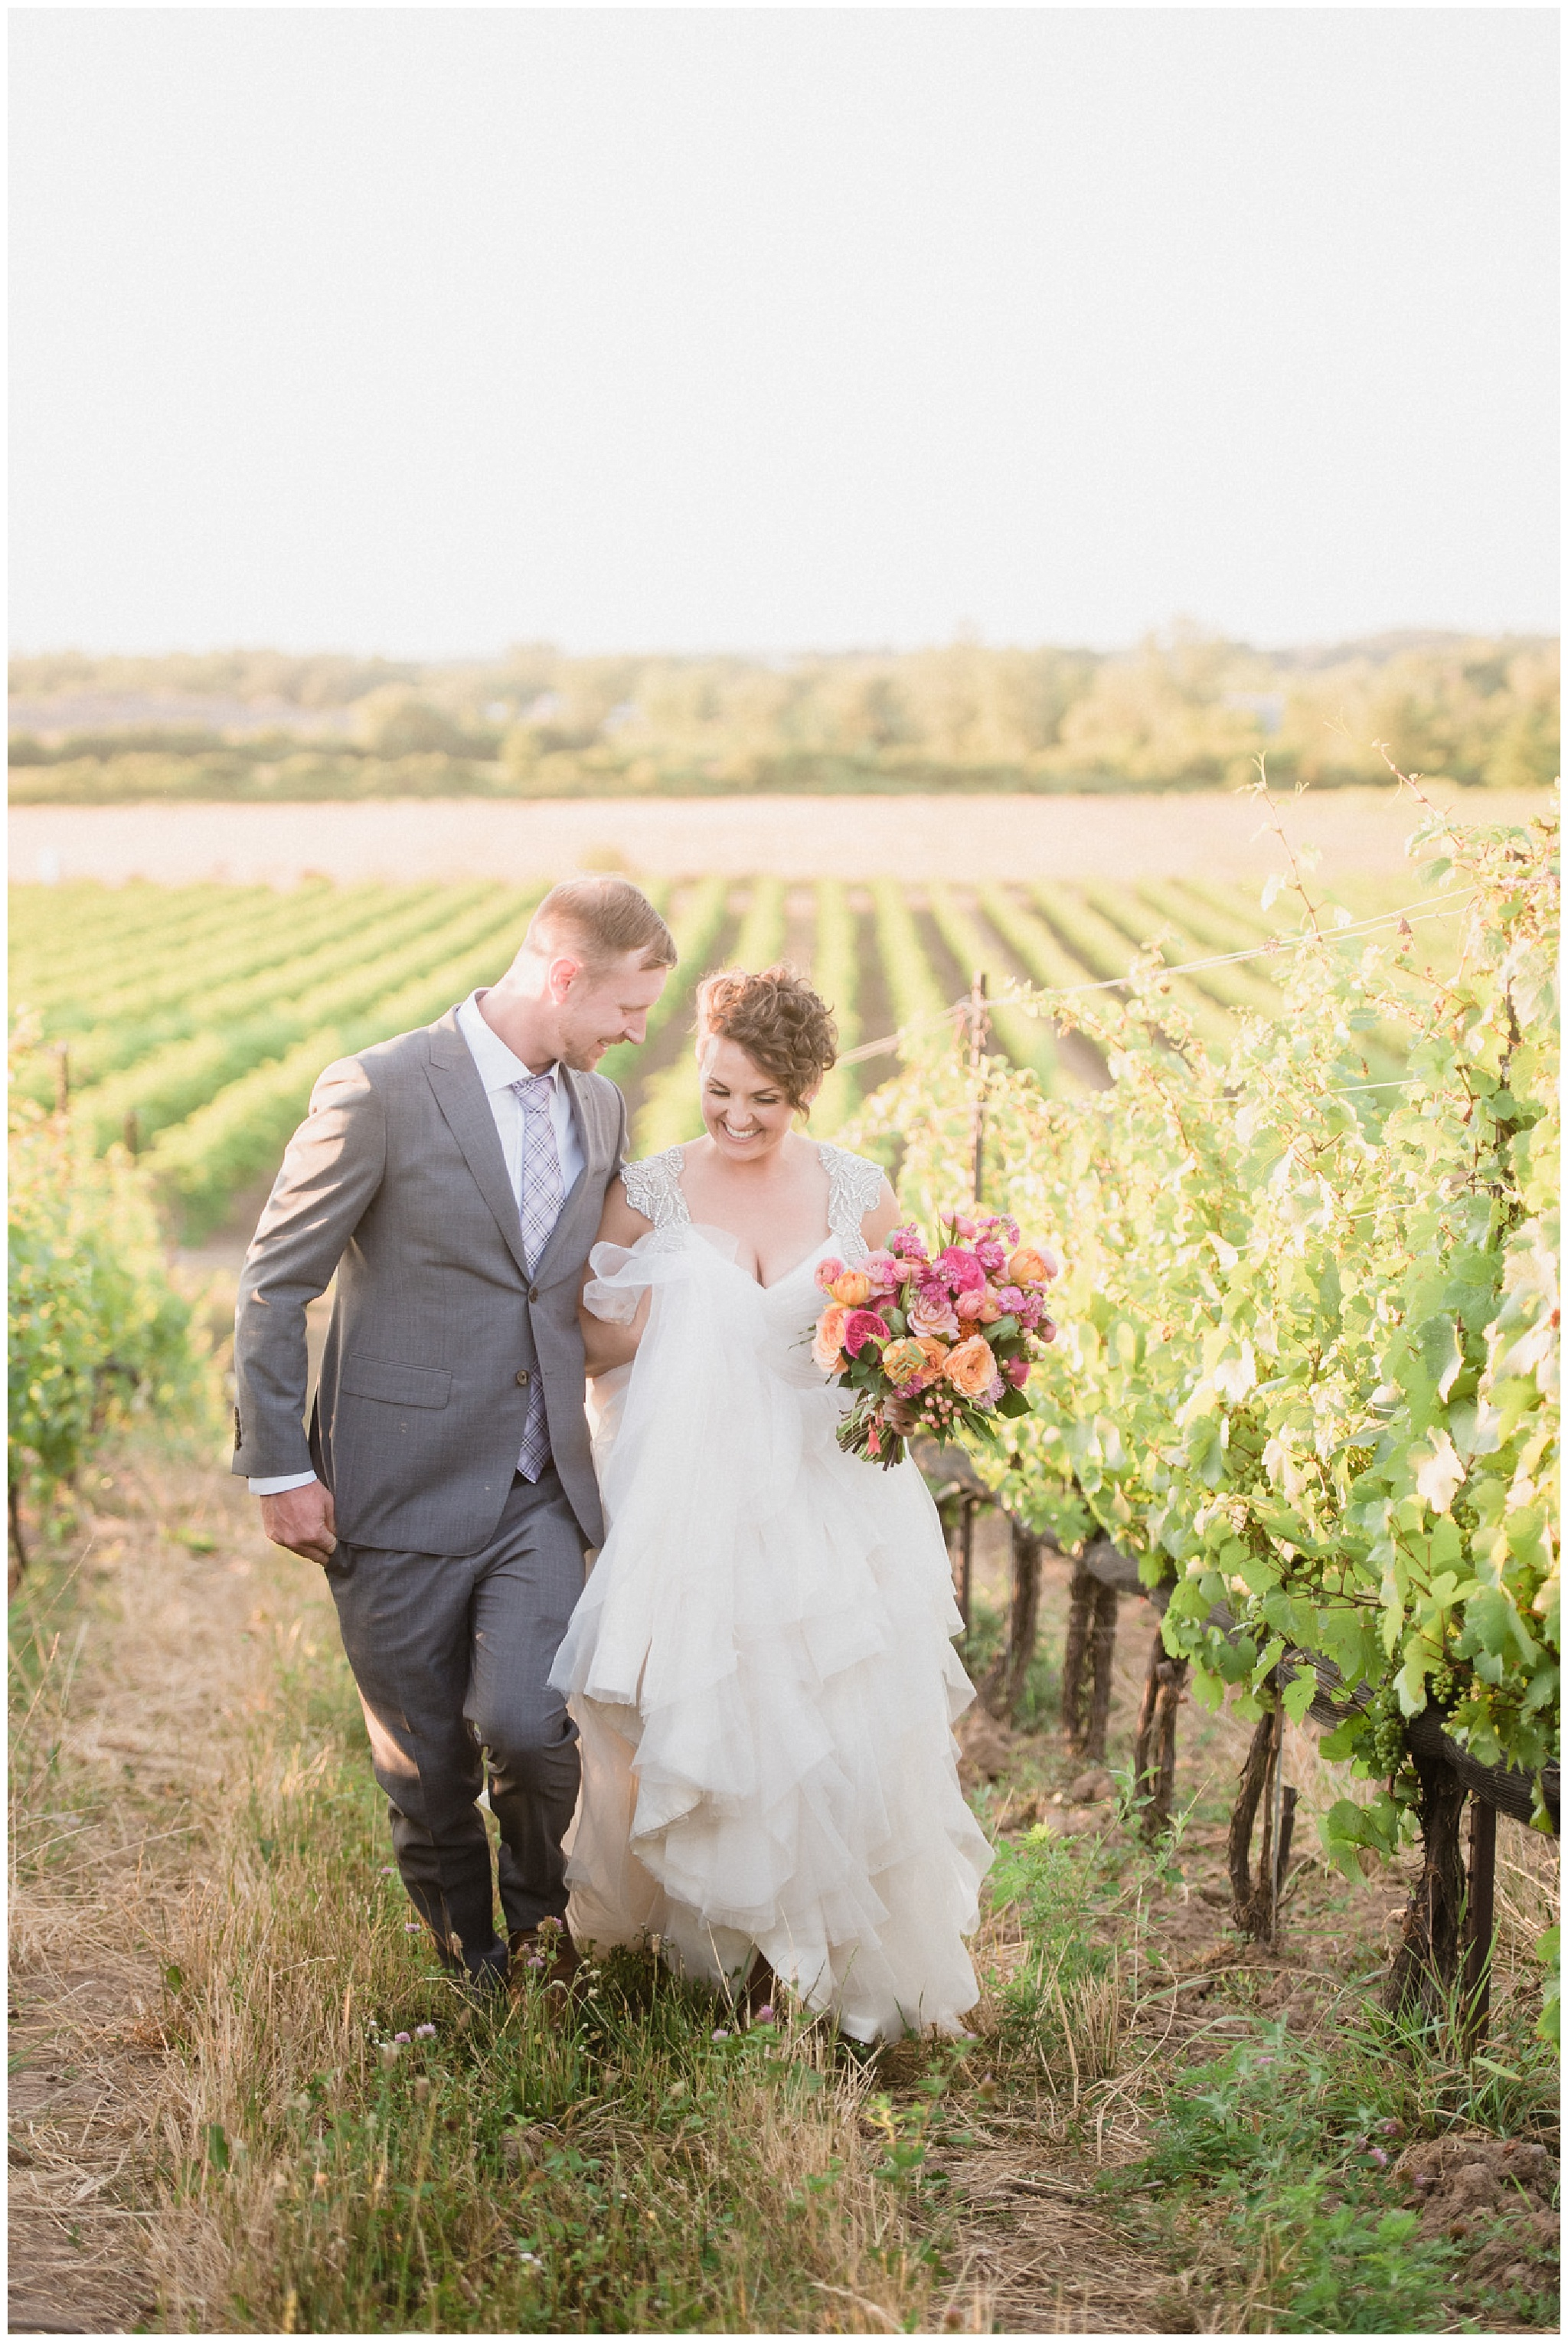 Sunset bride and groom portraits at Ravine Vineyard by Jenn Kavanagh Photography